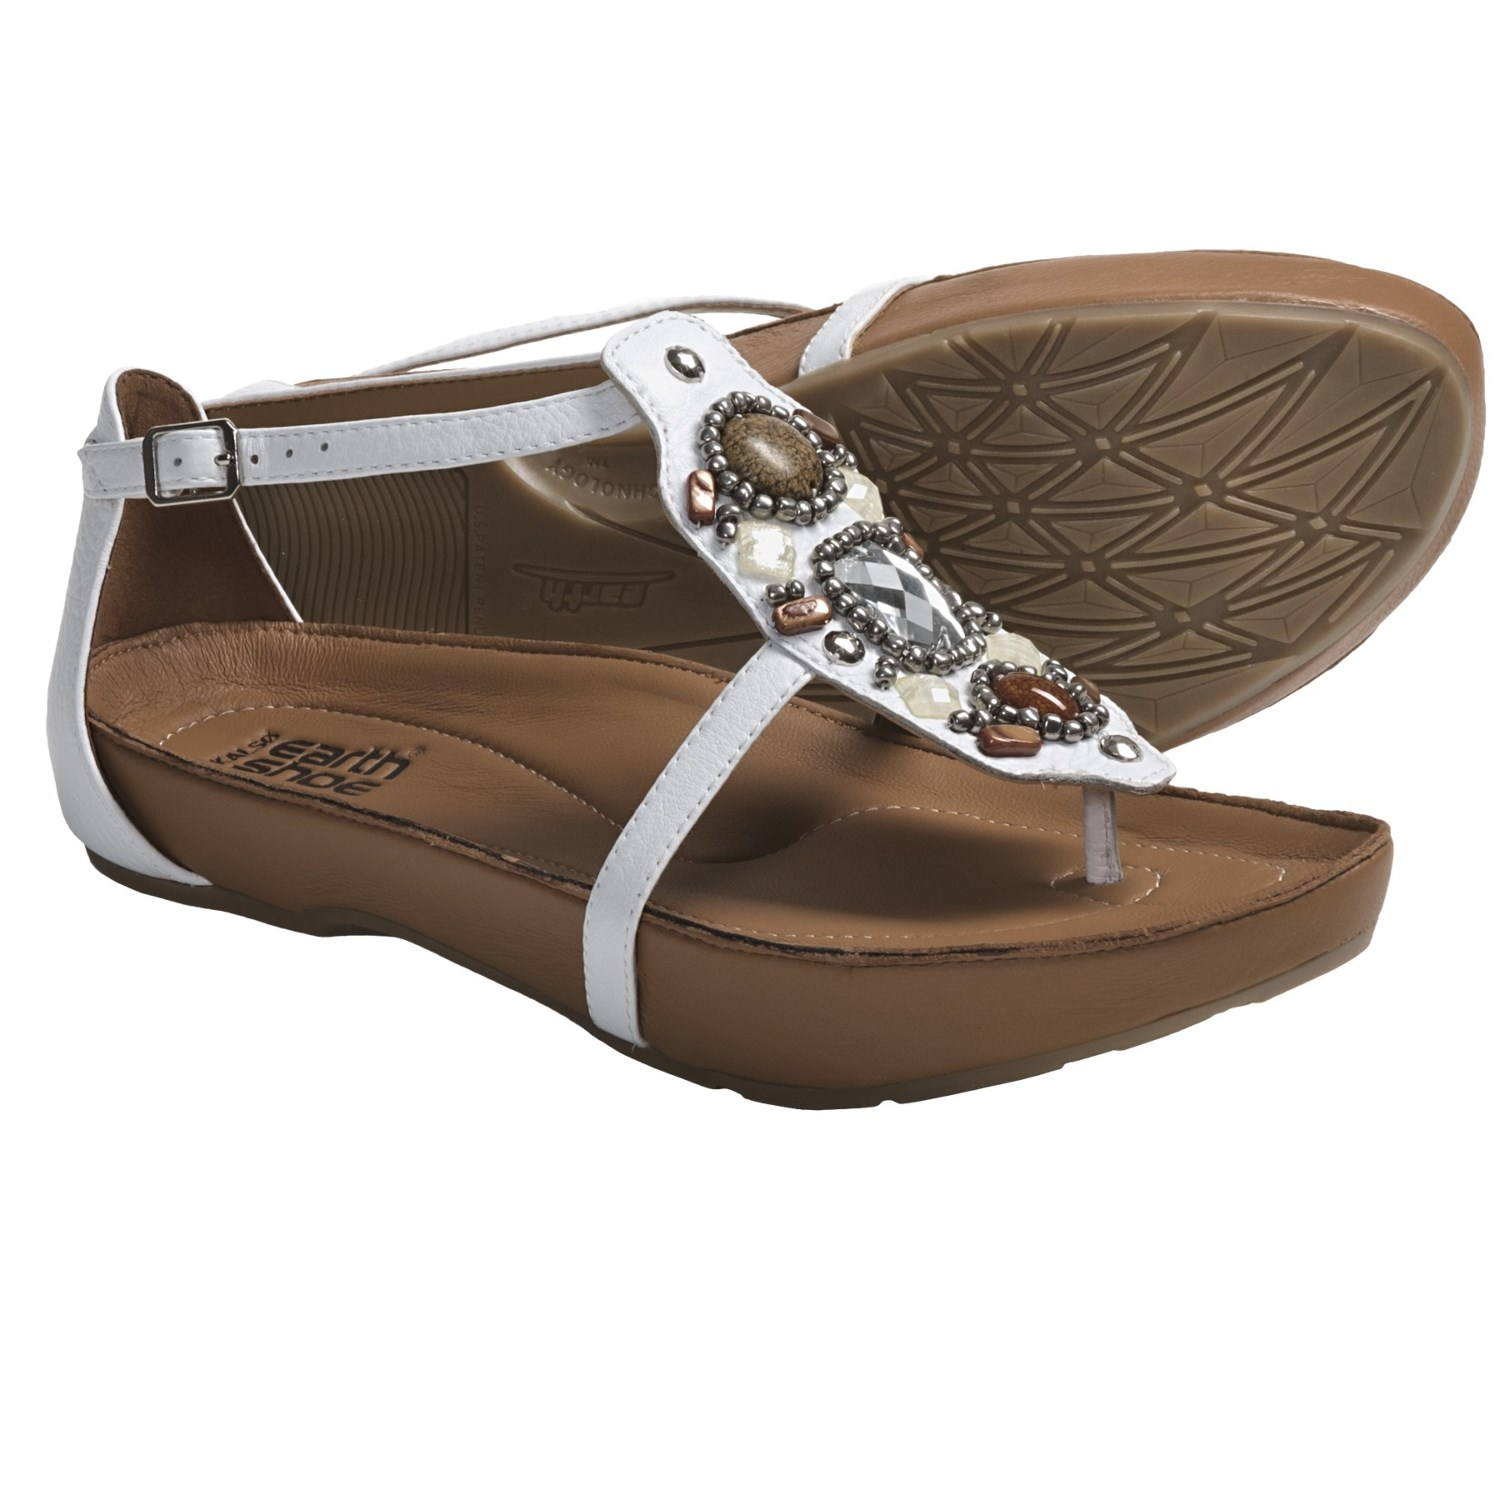 Kalso Earth Enchant Sandals (For Women) 5087J - Save 38%